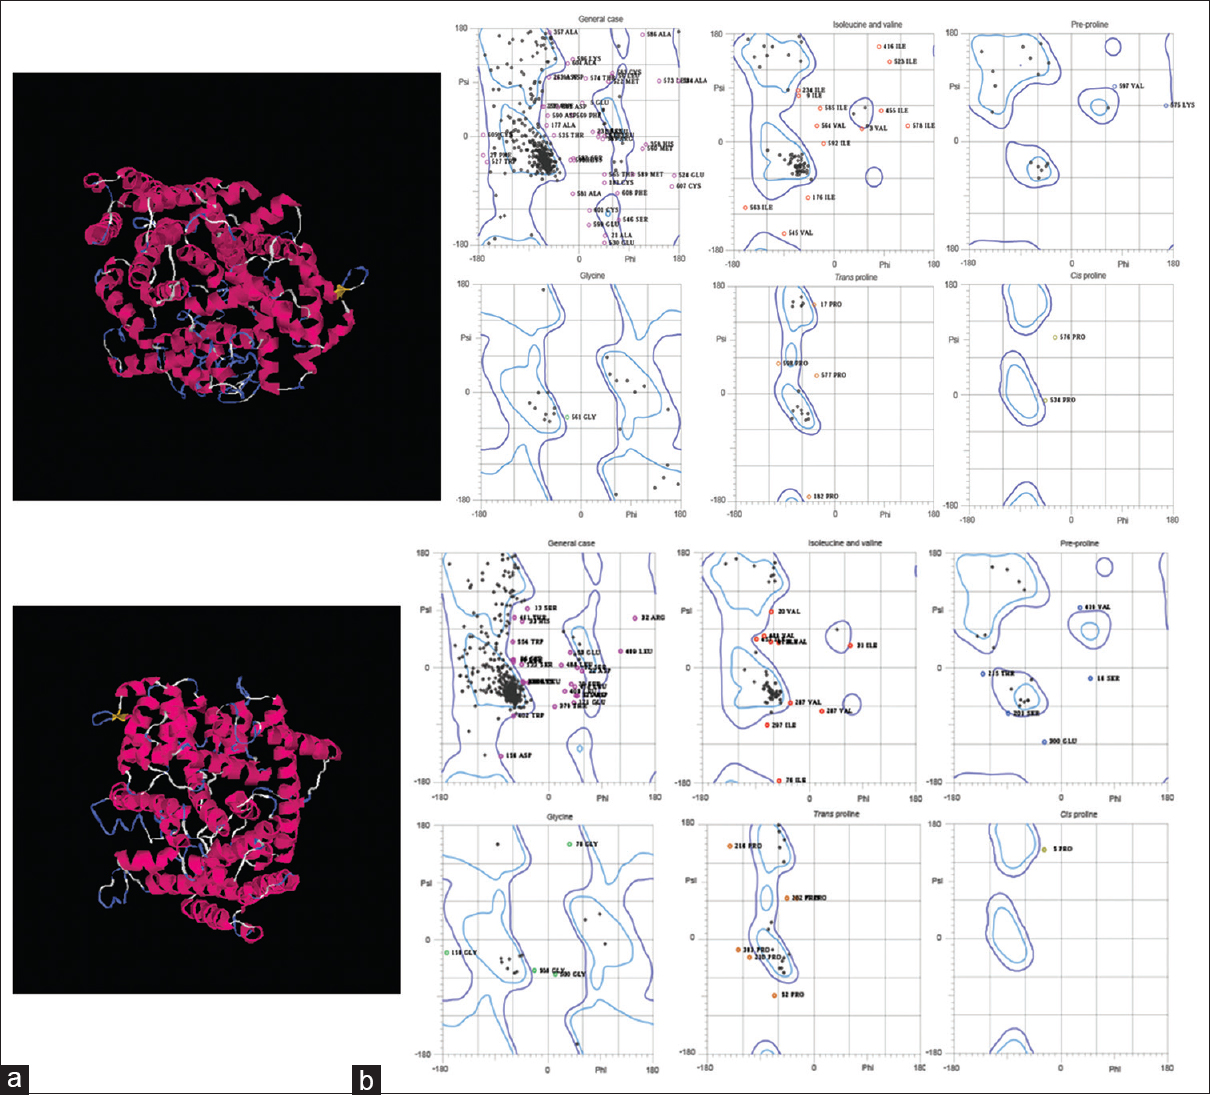 Figure 5: Homology modeling and evaluation of tertiary structure: Prediction of tertiary structure of the modeled (a) β-Caryophyllene synthase and (b) E-β-Farnesene synthase generated by the I-TASSER server. The different domains of the protein are color coded